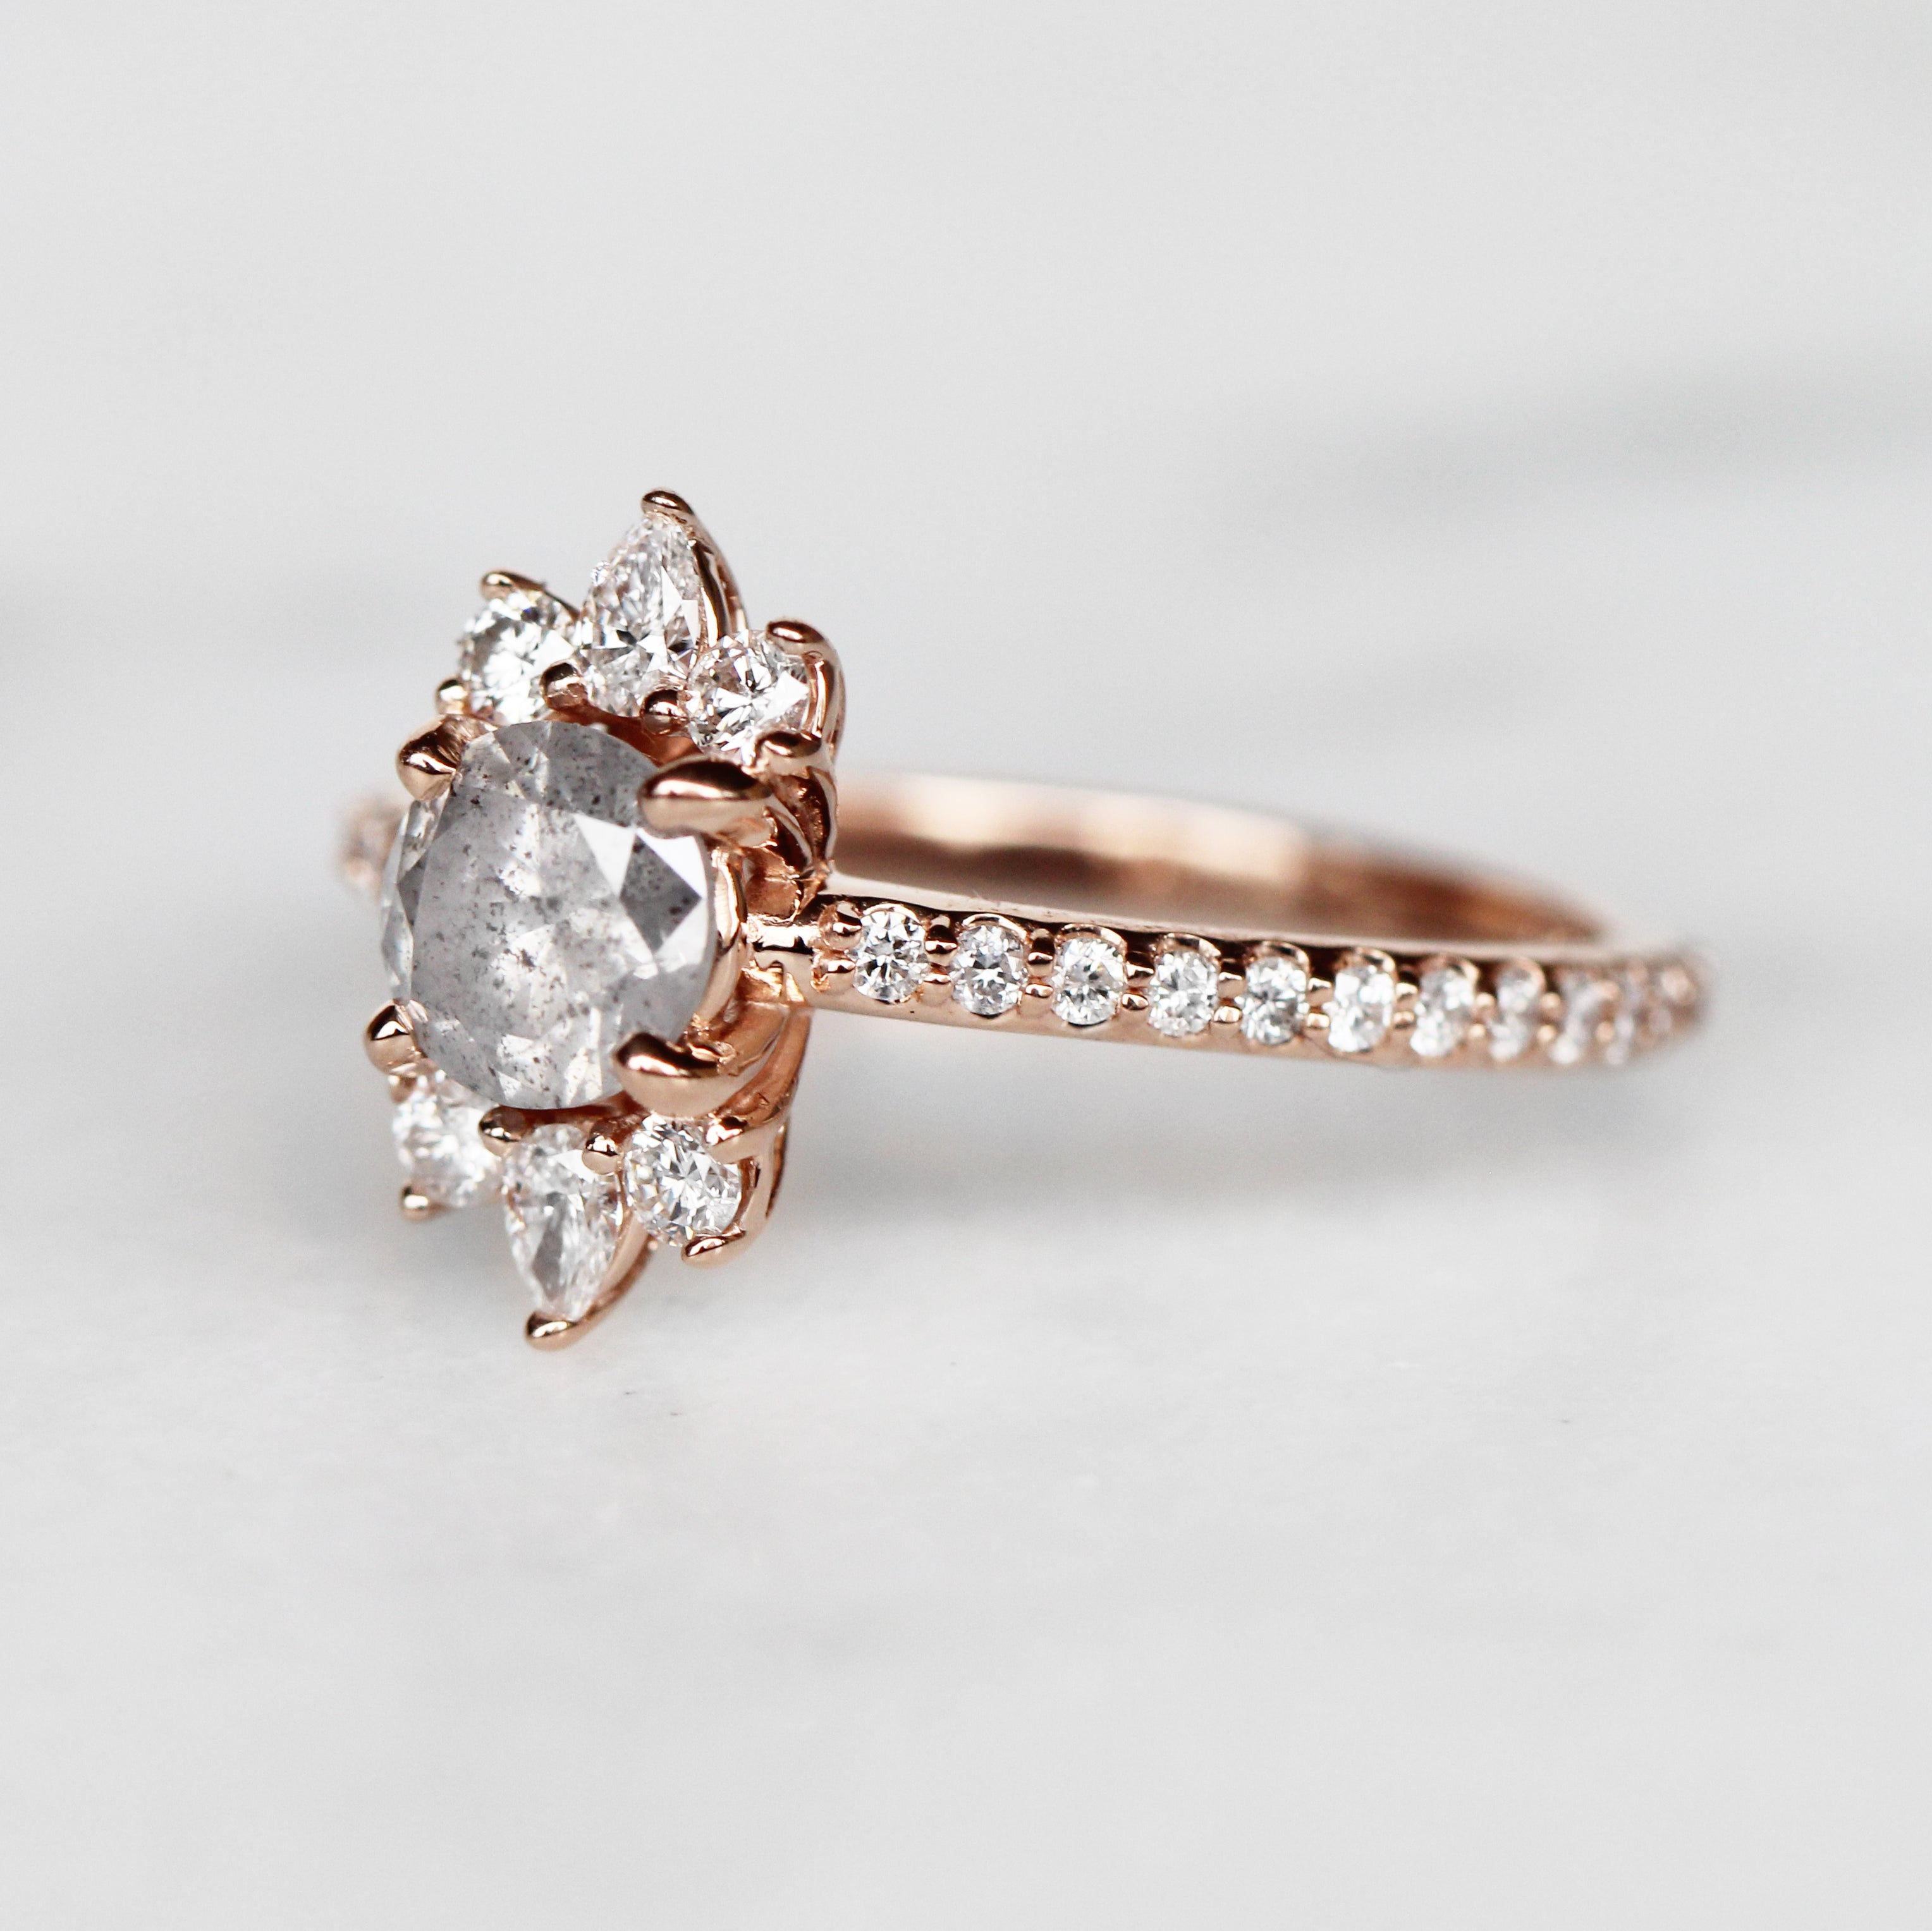 Cora Ring with .72 Carat Celestial Diamond in 10k Rose Gold - Ready to Size and Ship - Salt & Pepper Celestial Diamond Engagement Rings and Wedding Bands  by Midwinter Co.